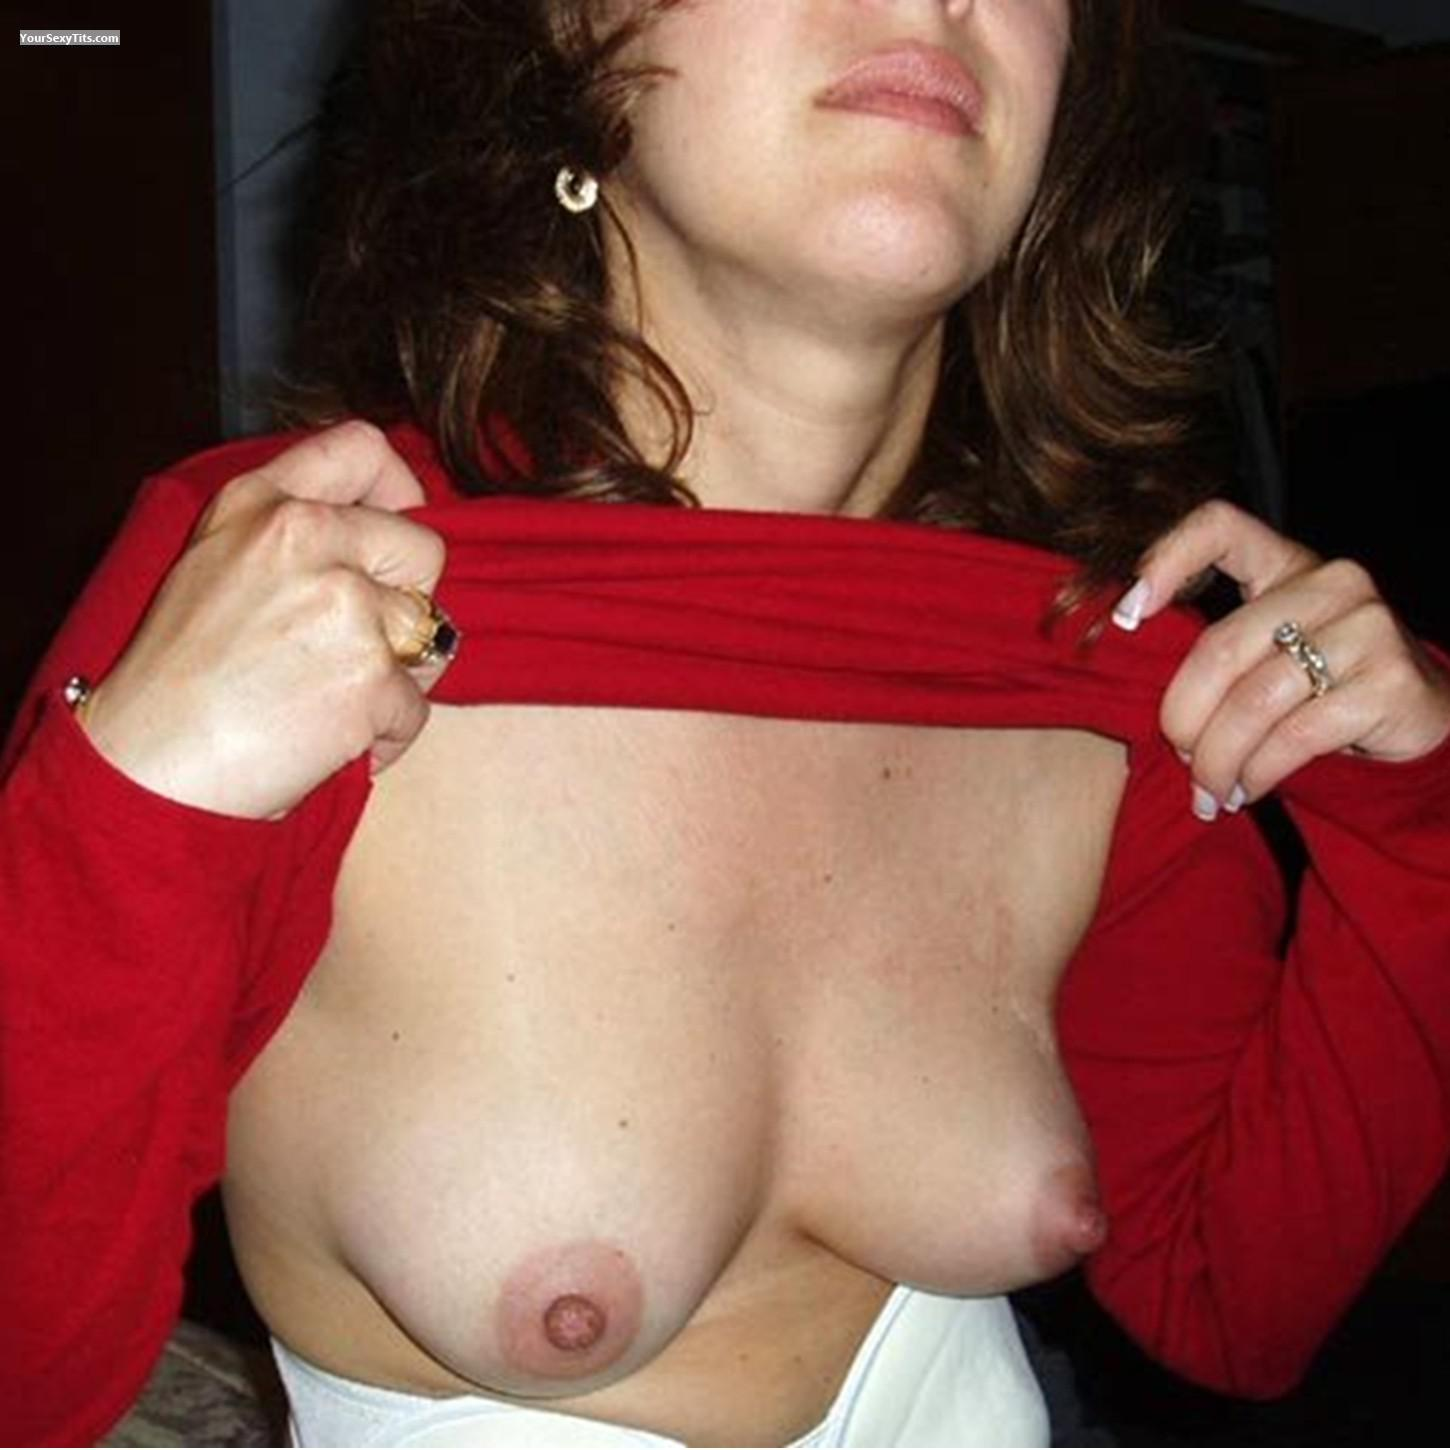 Medium Tits Of My Wife Mindy